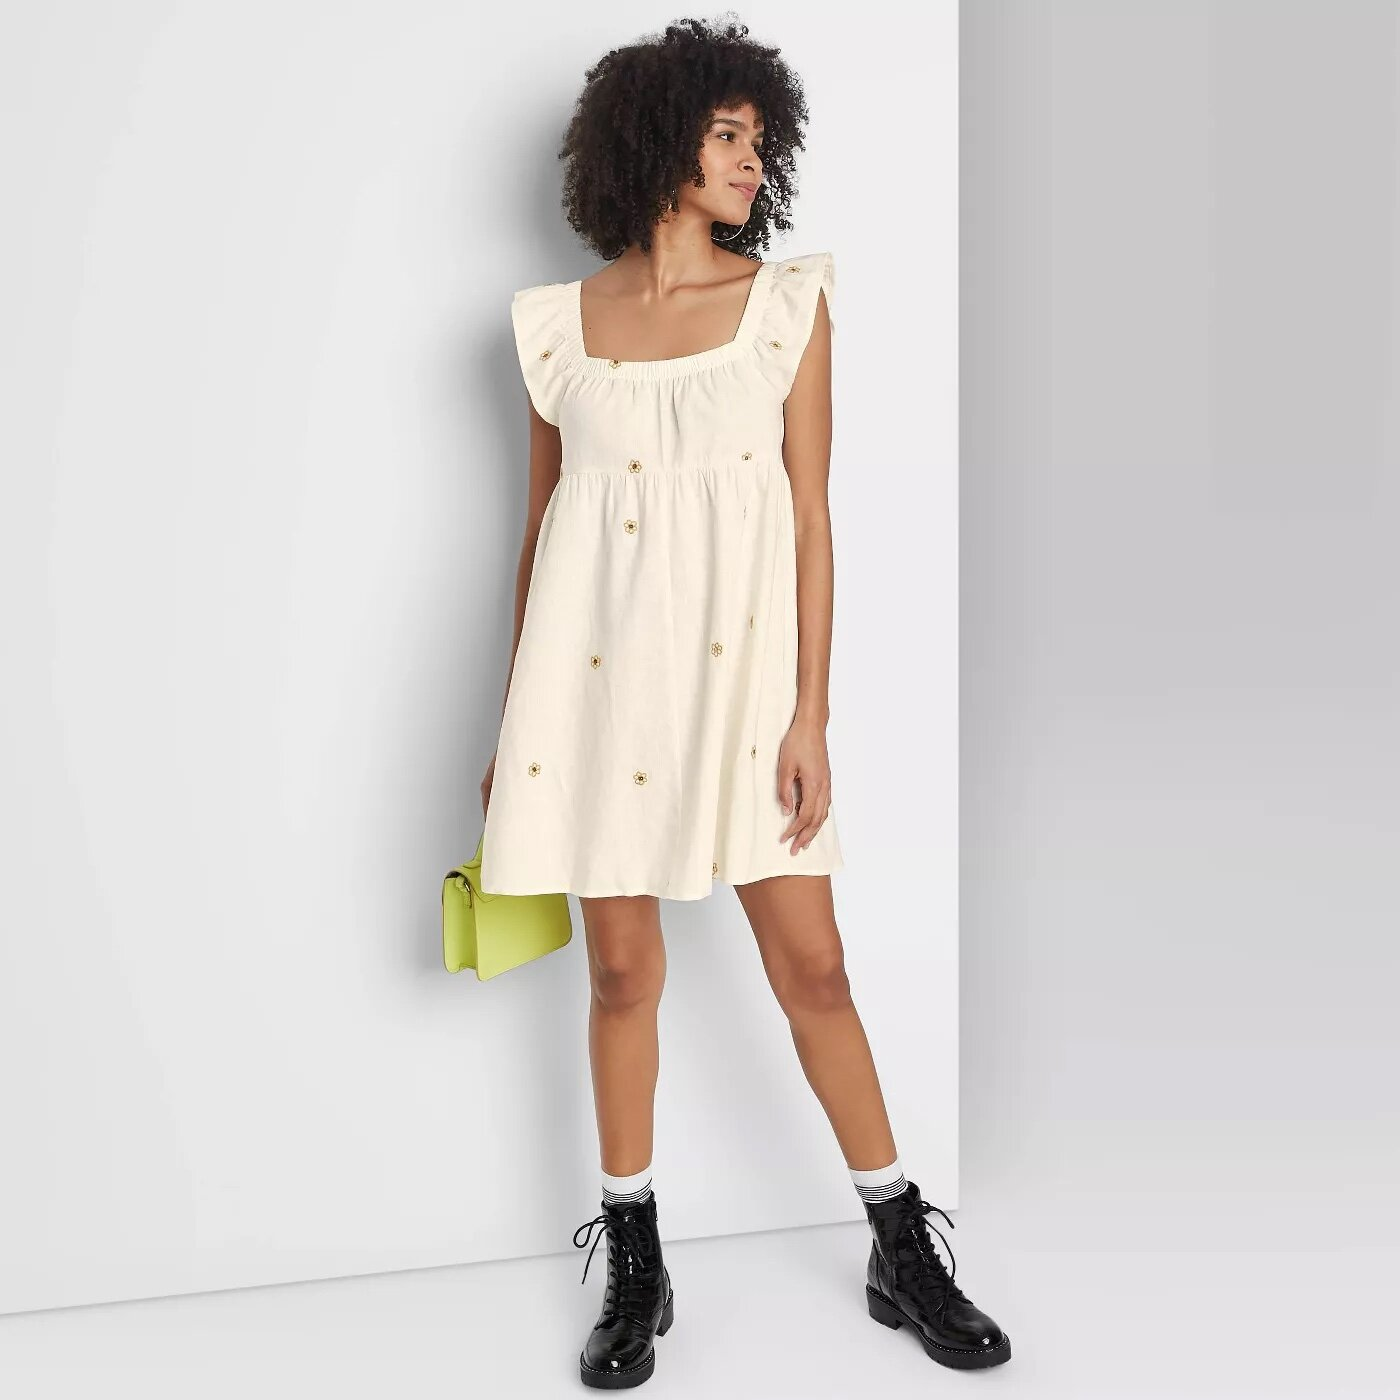 25 Gorgeous Spring Dresses From Target You'll Love